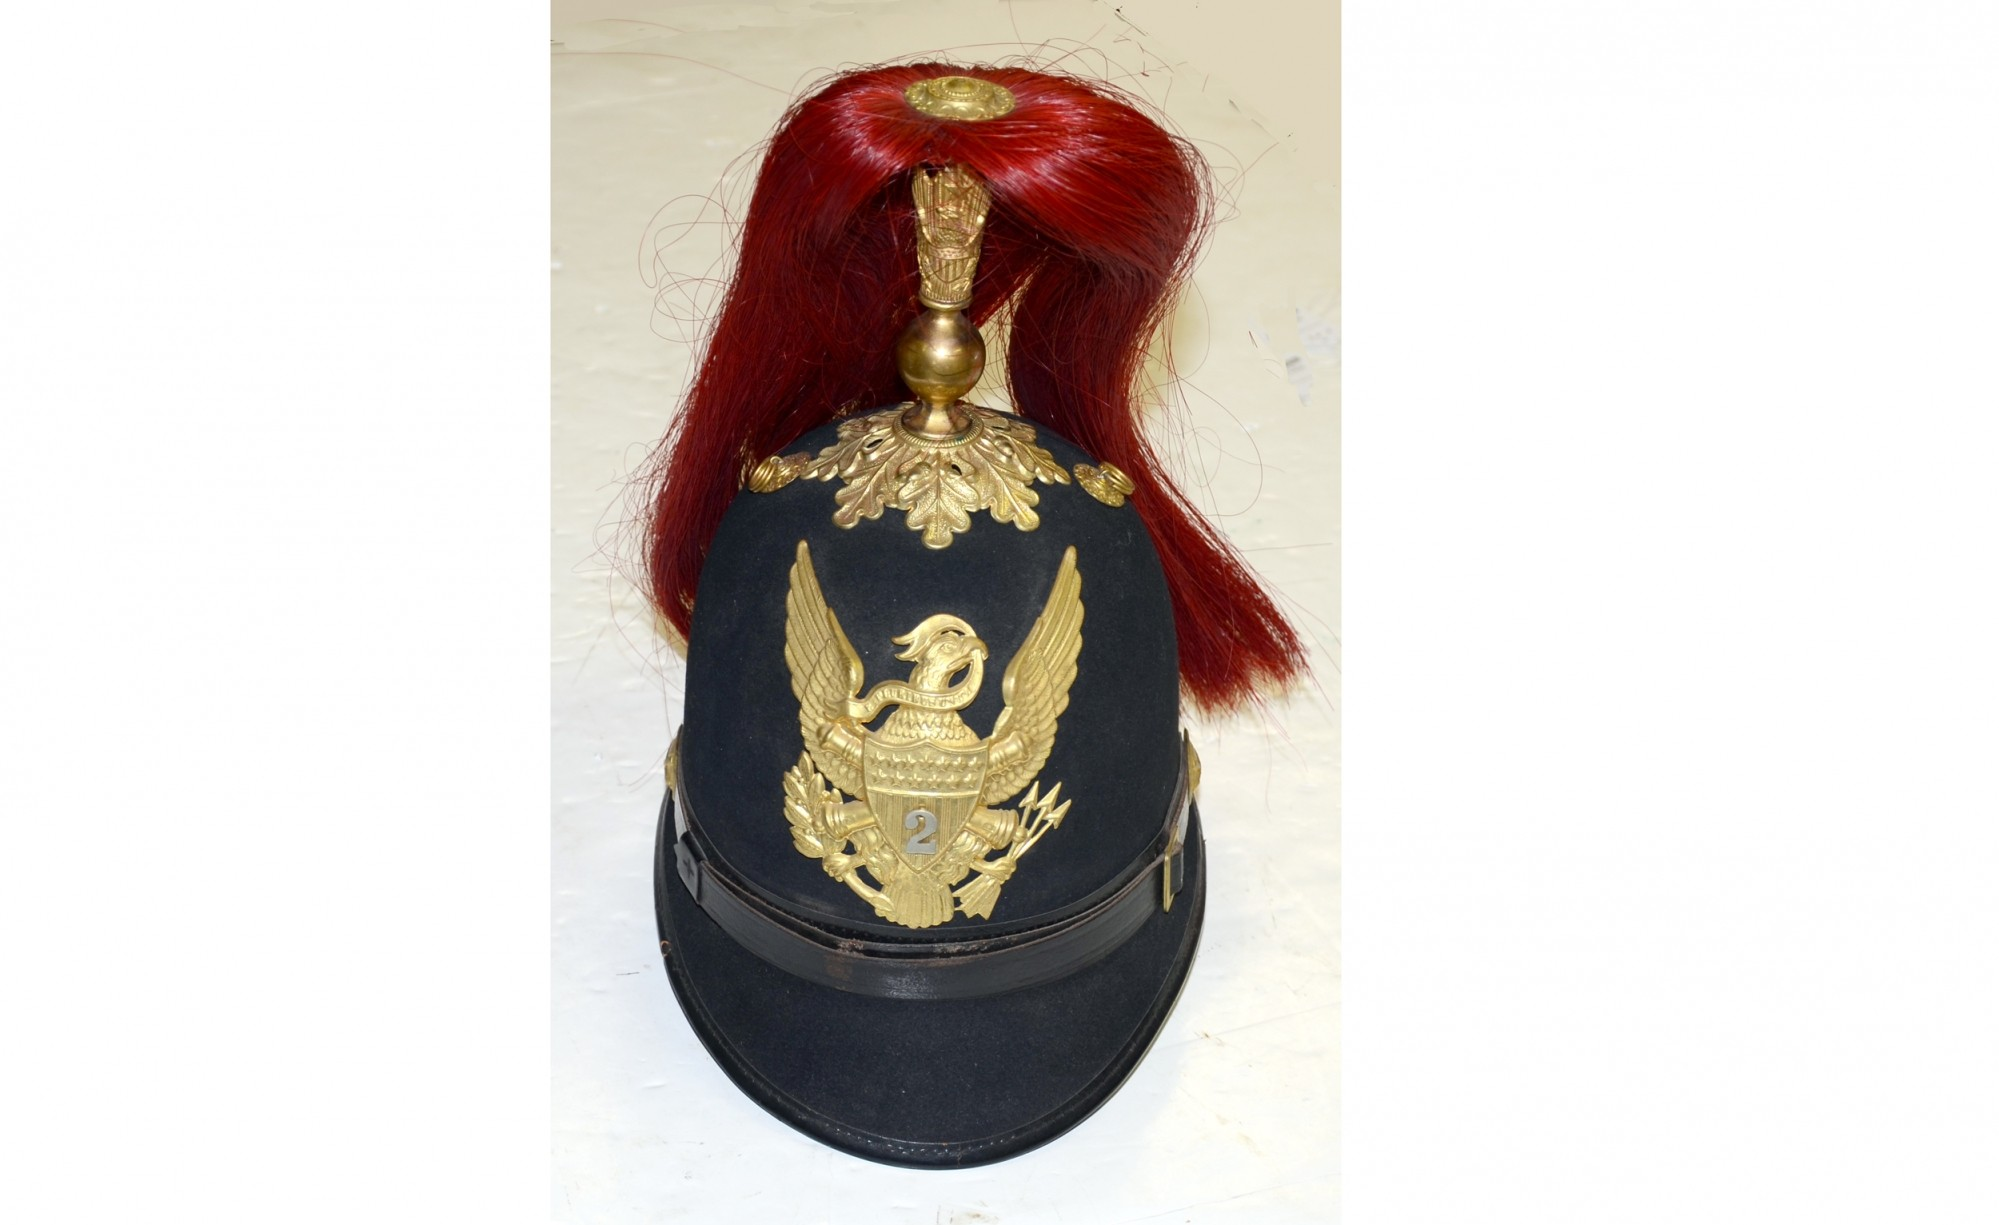 MODEL 1881 2ND ARTILLERY HELMET